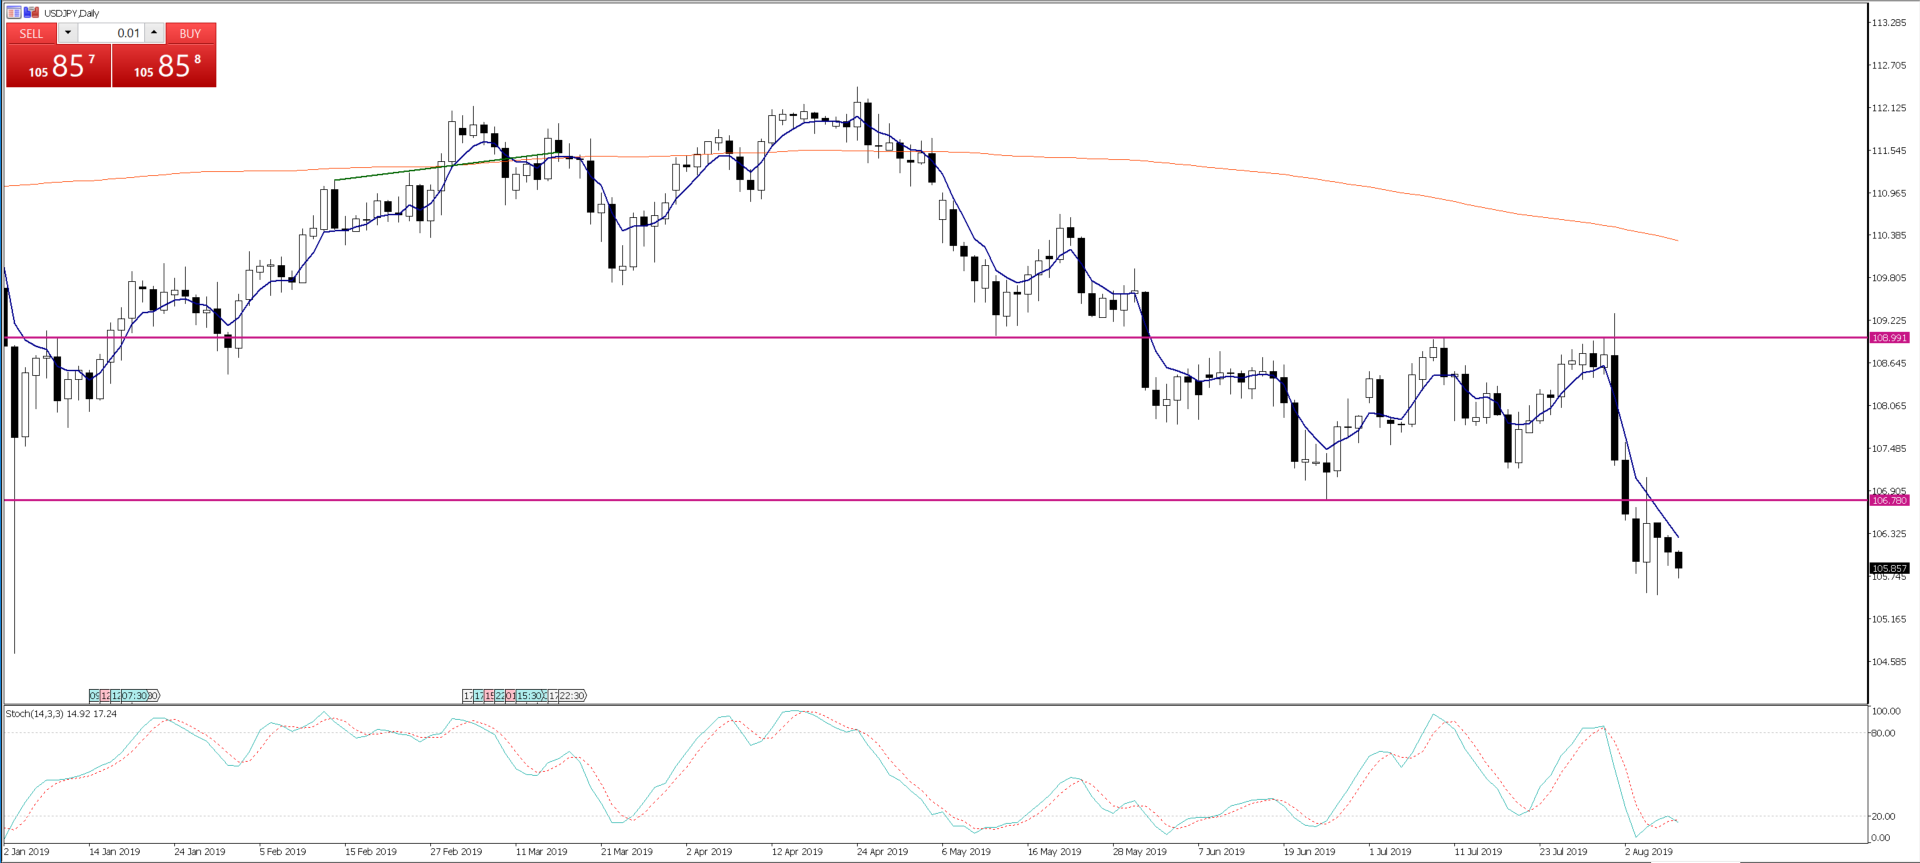 Chart of the Day - Aug 9, 2019 - USDJPY, daily